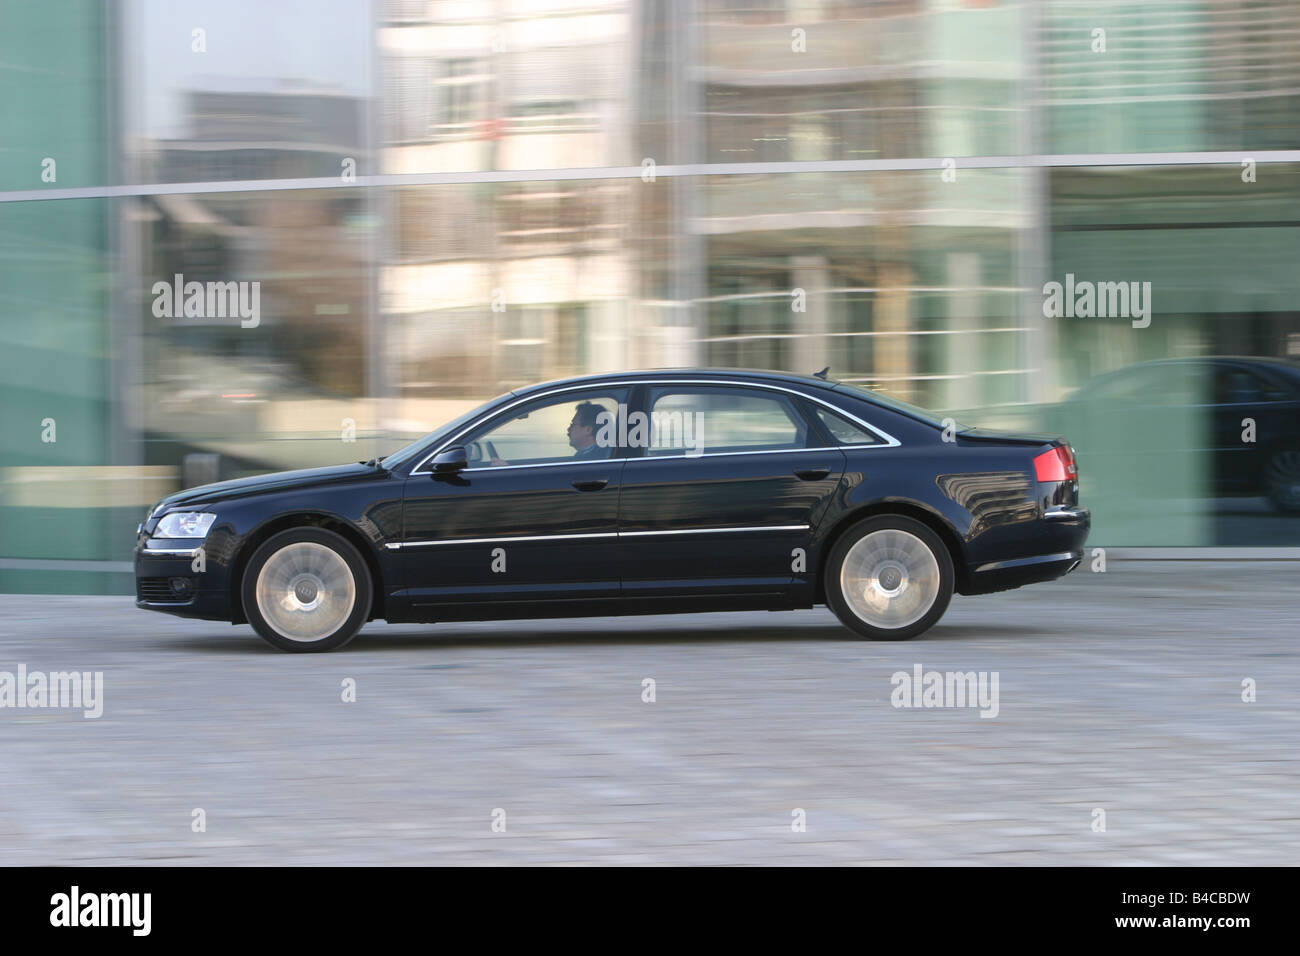 Audi A W Stock Photos Audi A W Stock Images Alamy - Audi a8 w12